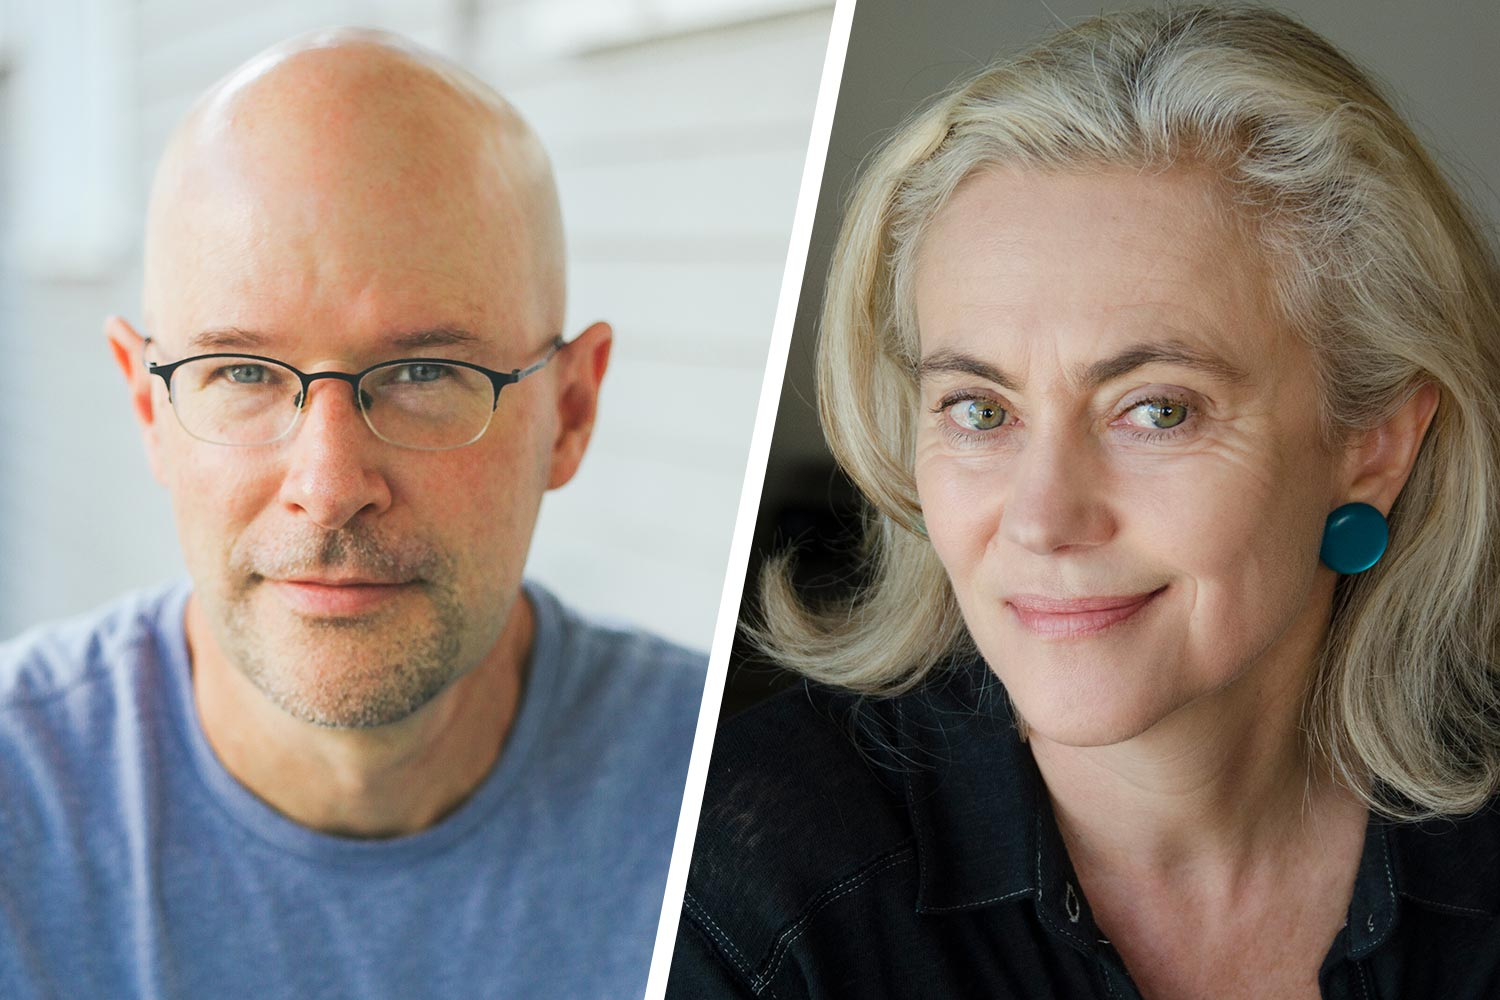 """""""Modern Love"""" editor Daniel Jones, left, will take part in a virtual fireside chat with UVA English professor and author Jane Alison, right, on Thursday night. (Contributed photos)"""